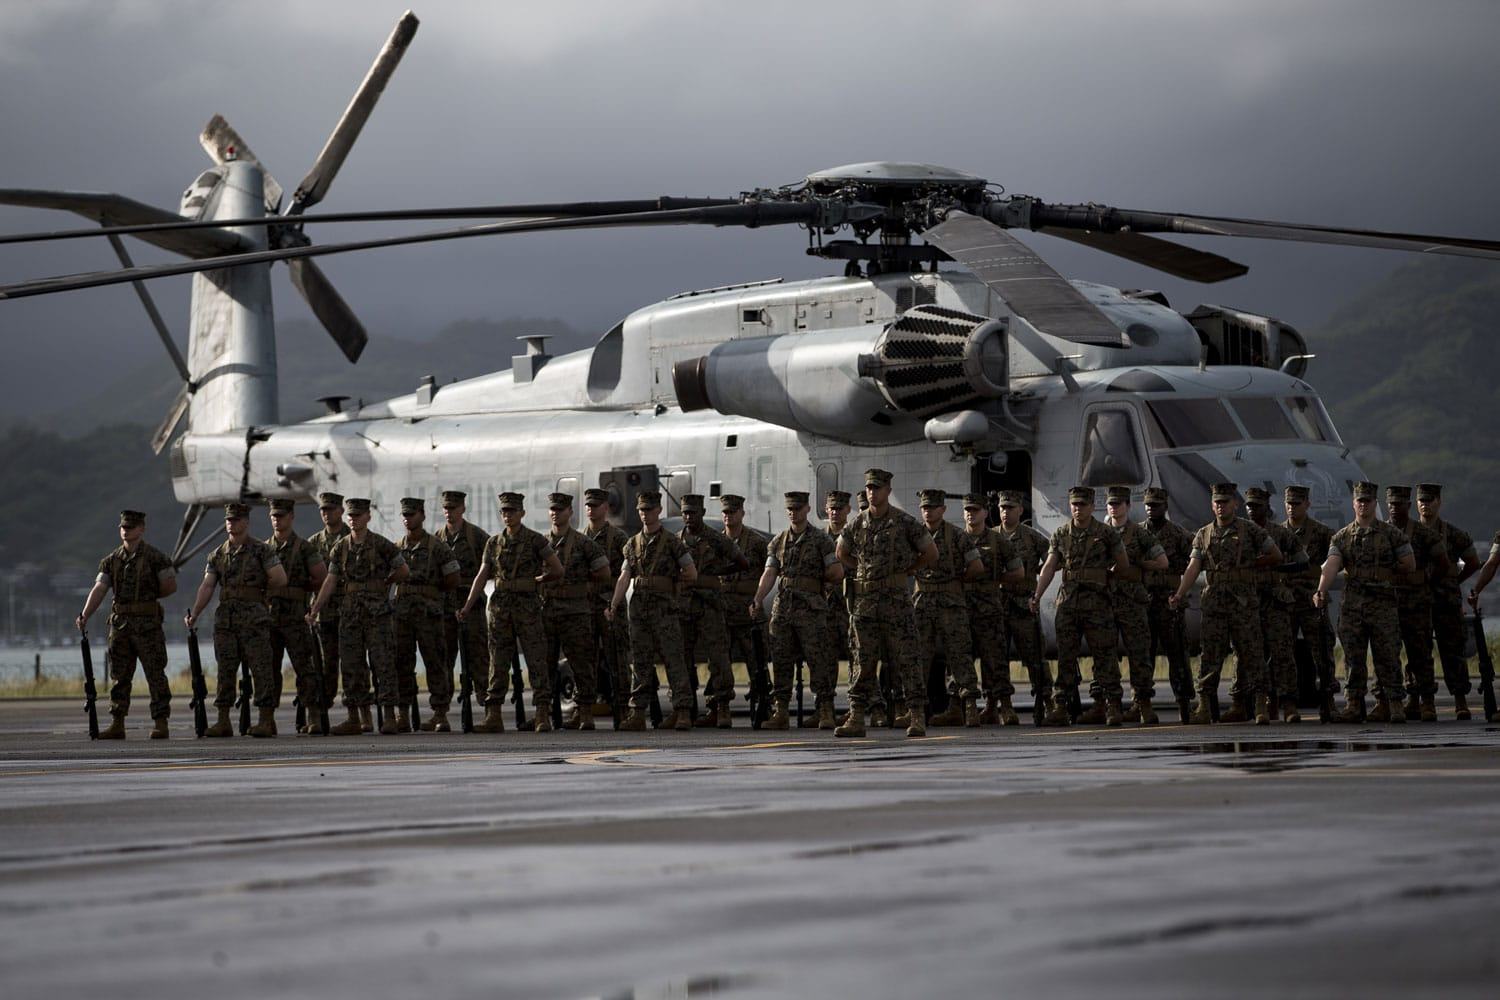 U.S. Marines with Marine Corps Heavy Helicopter Squadron 463 stand in formation, at parade rest, during the Marine Heavy Helicopter Squadron 463 Change of Command aboard Marine Corps Base Hawaii.